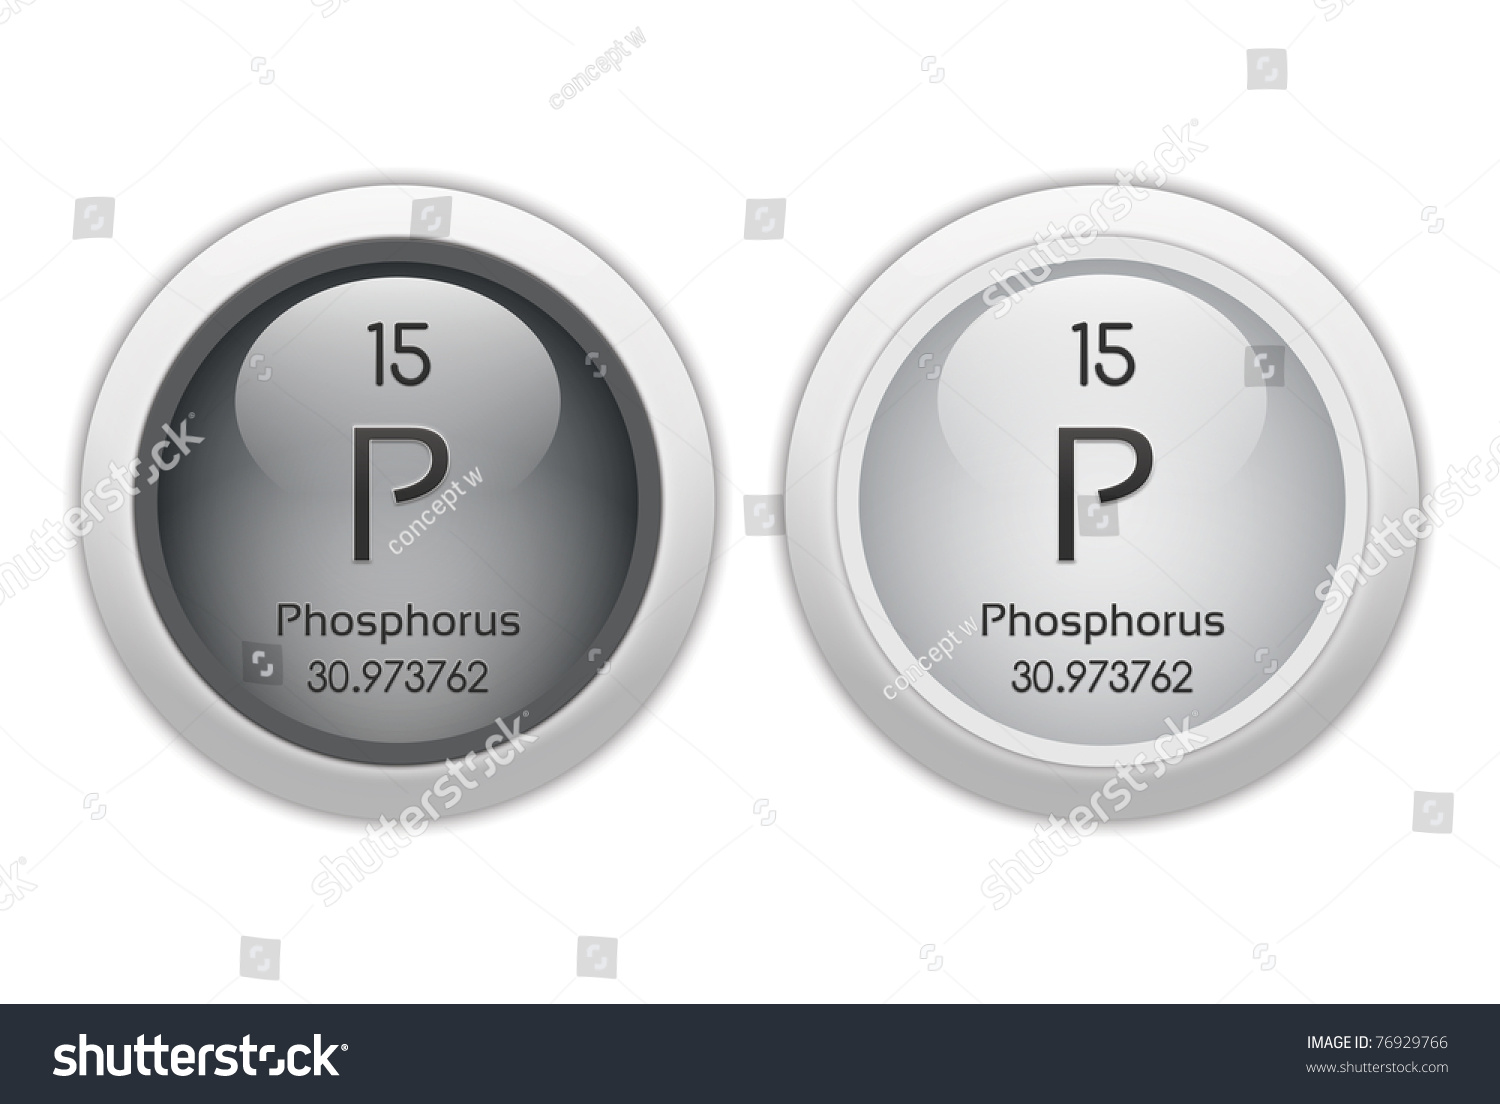 Phosphorus Two Web Buttons Chemical Element Stock Illustration